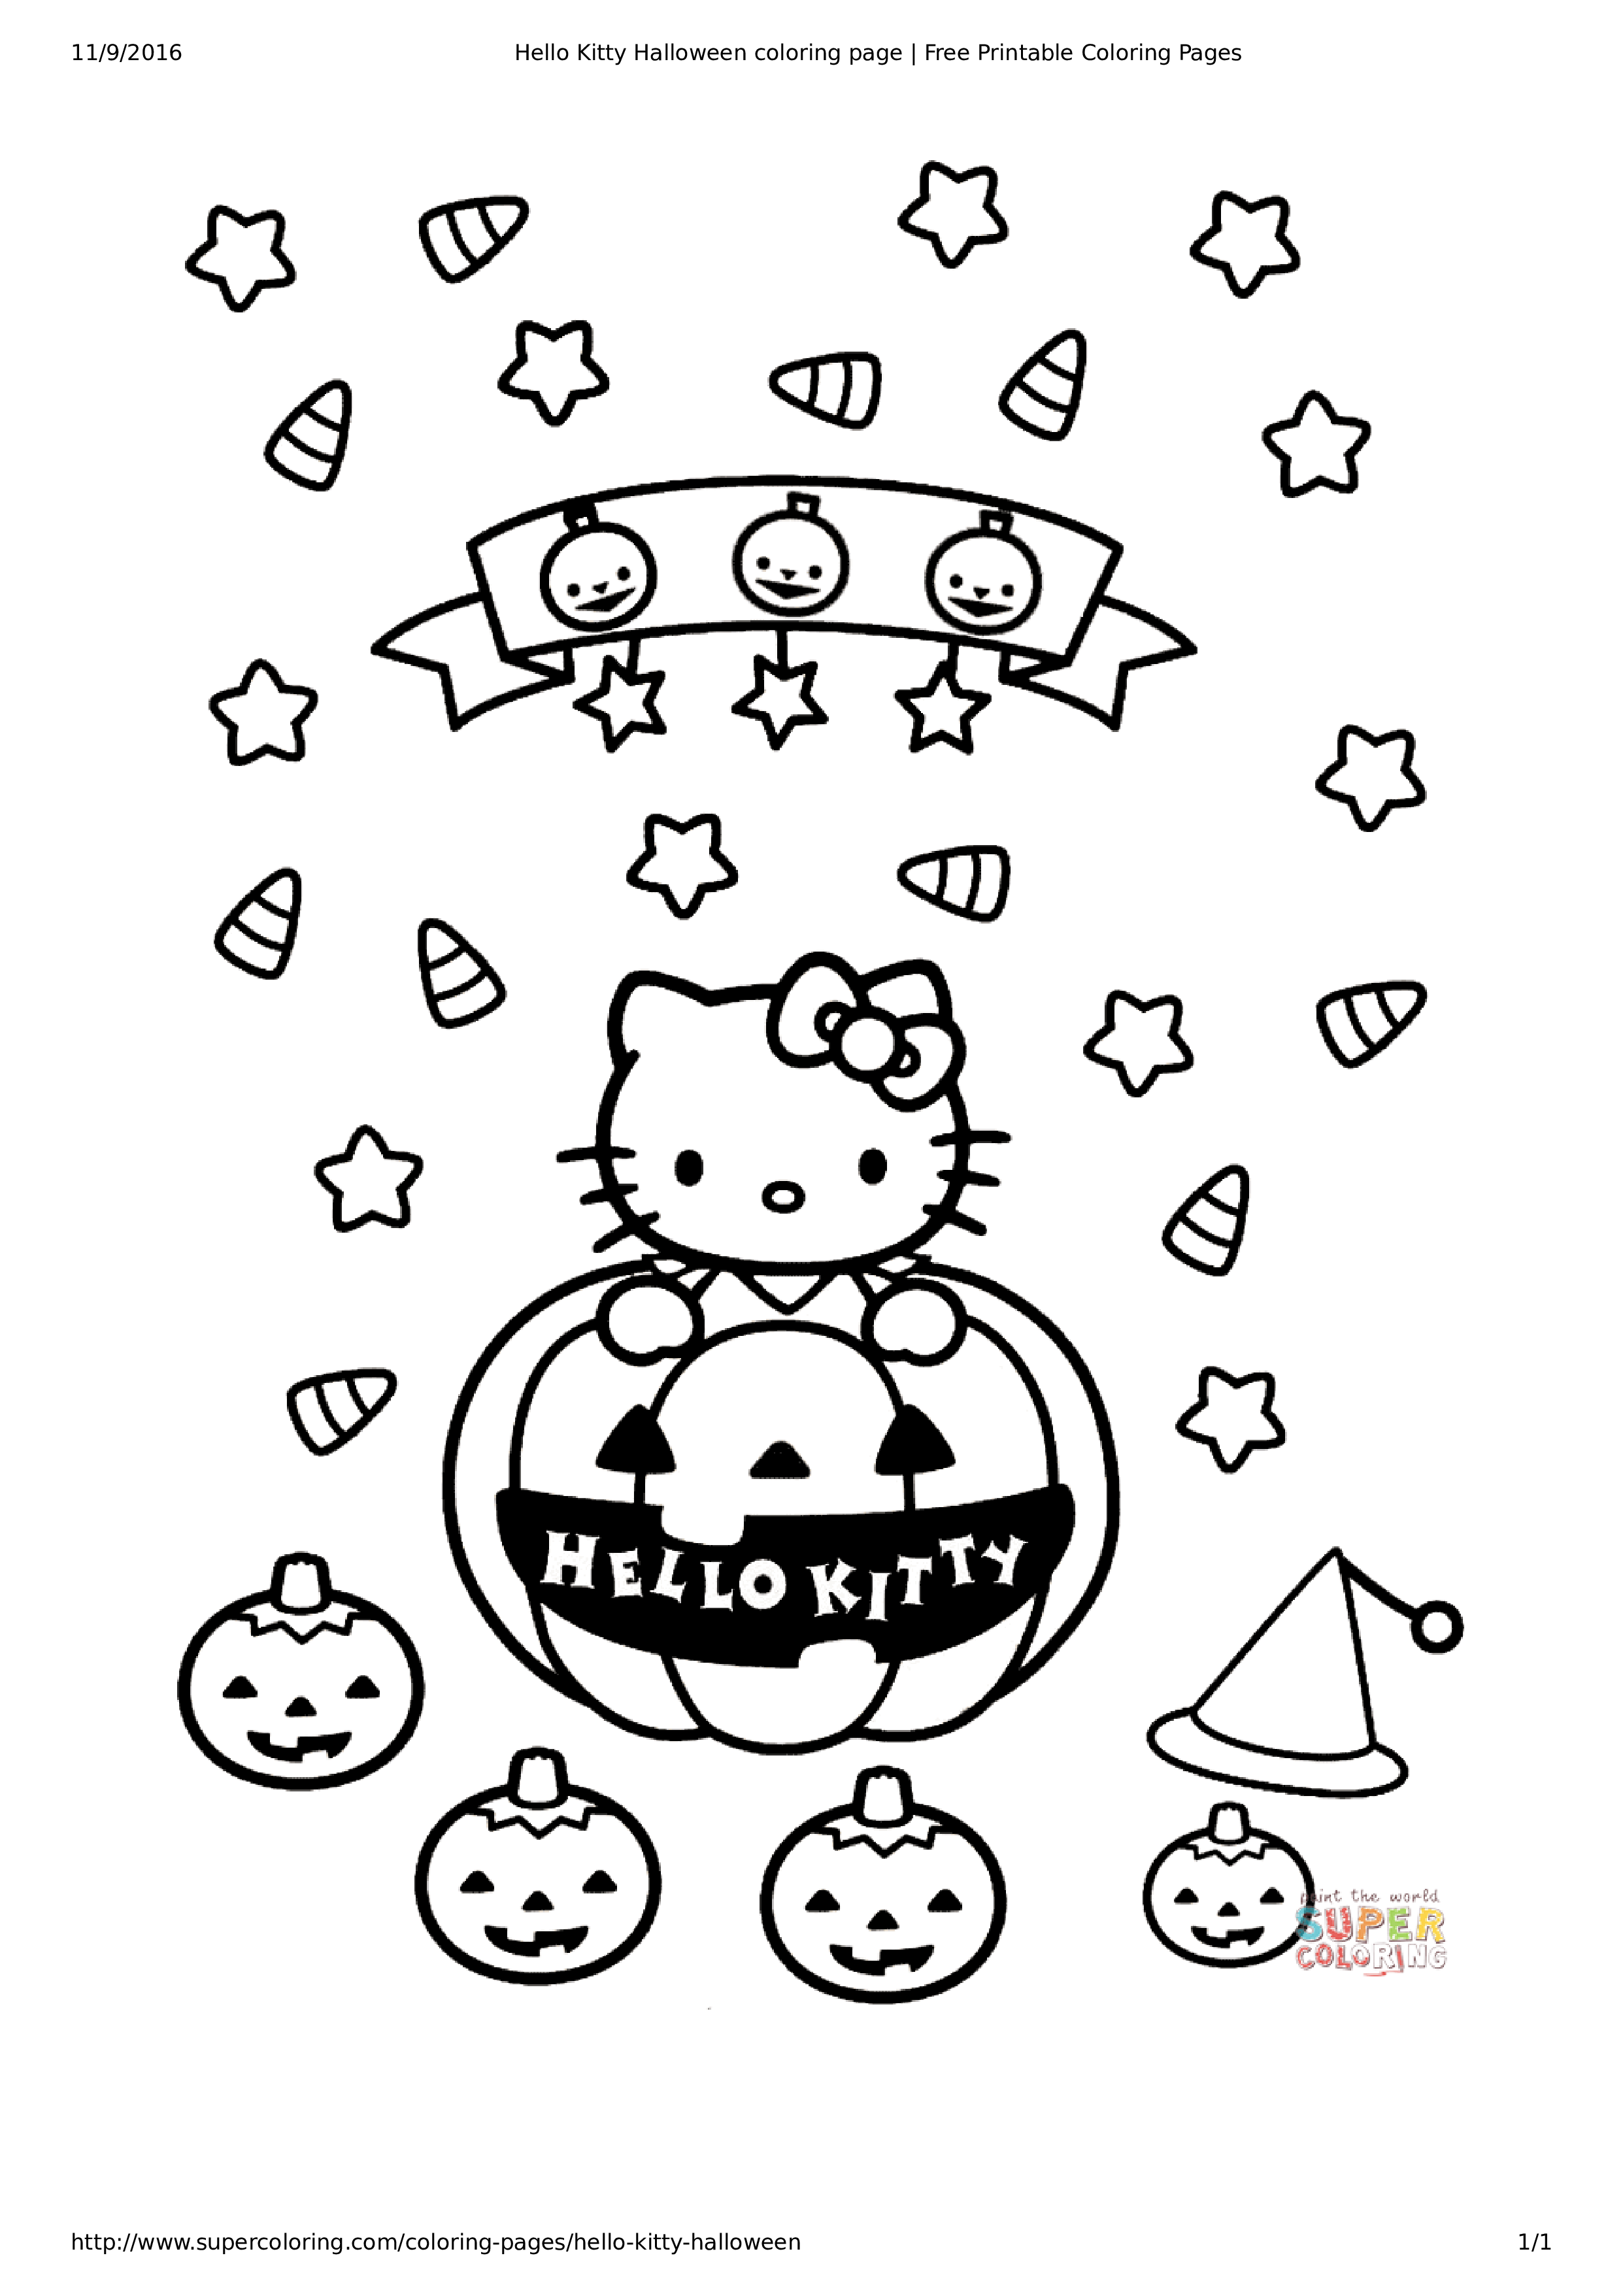 Hello Kitty Christmas Coloring Page Main Image